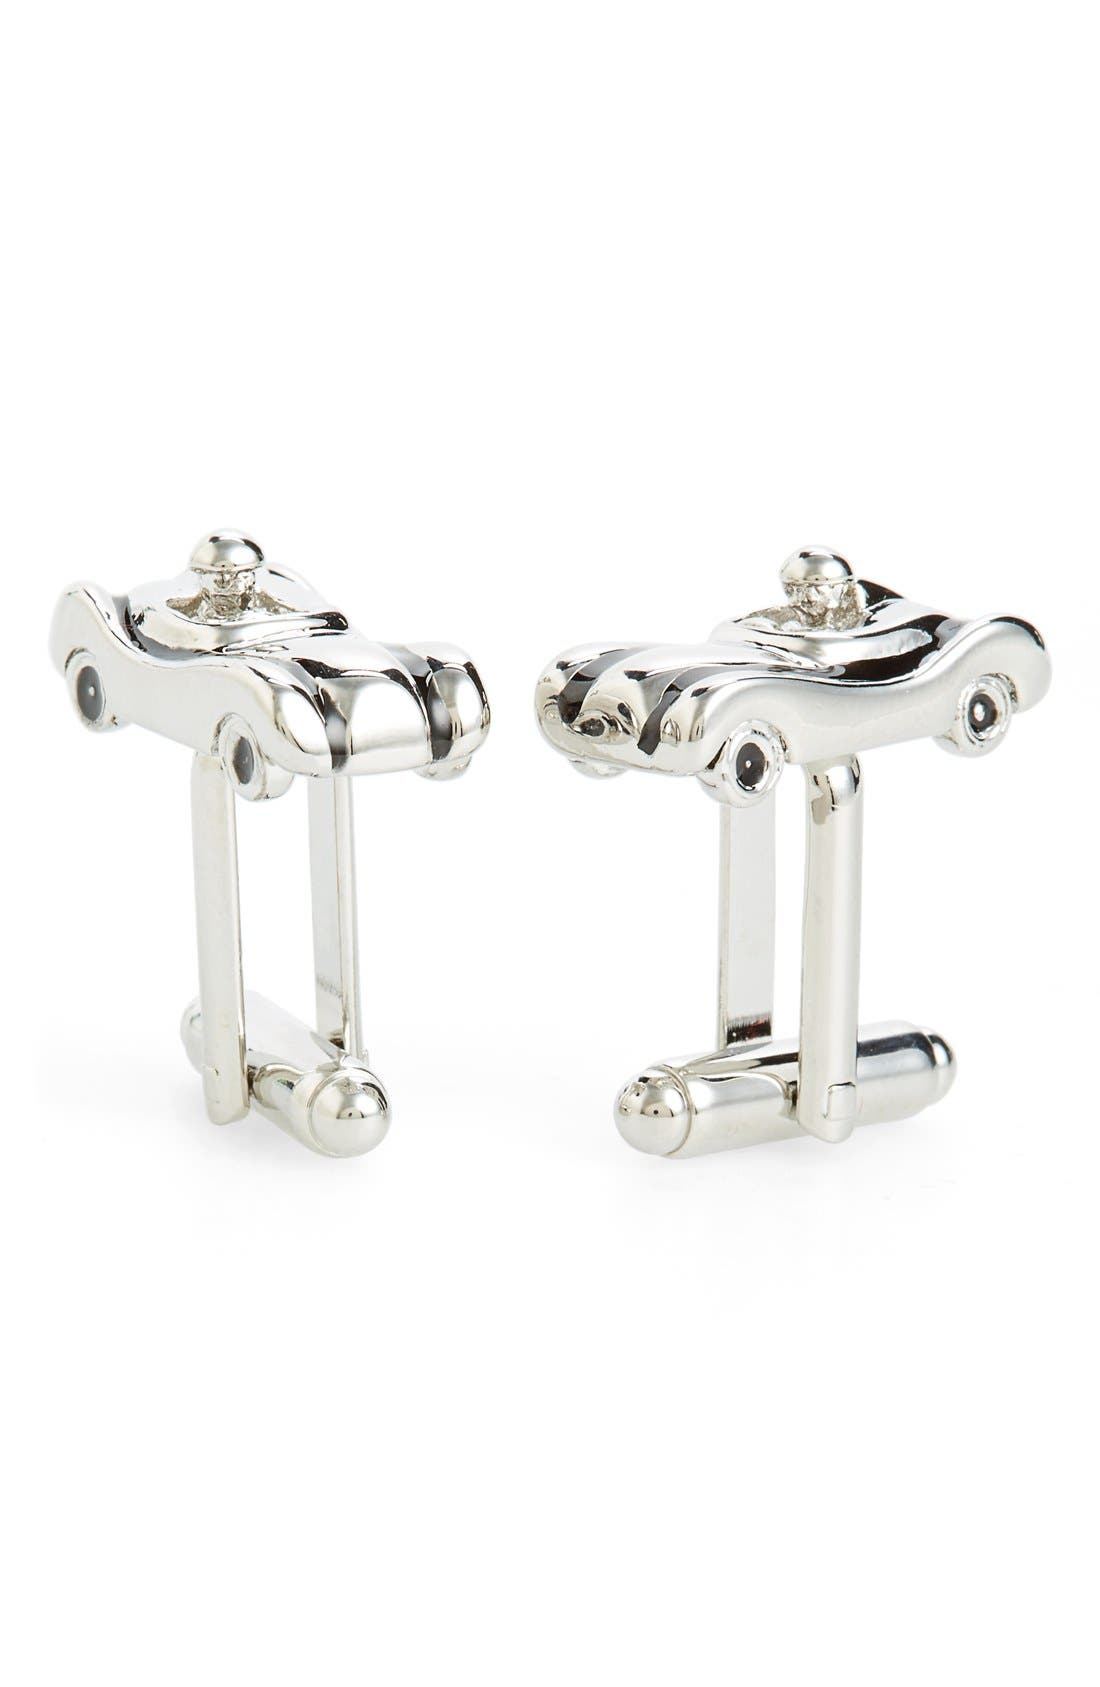 Speed Racer Cuff Links,                             Main thumbnail 1, color,                             Silver